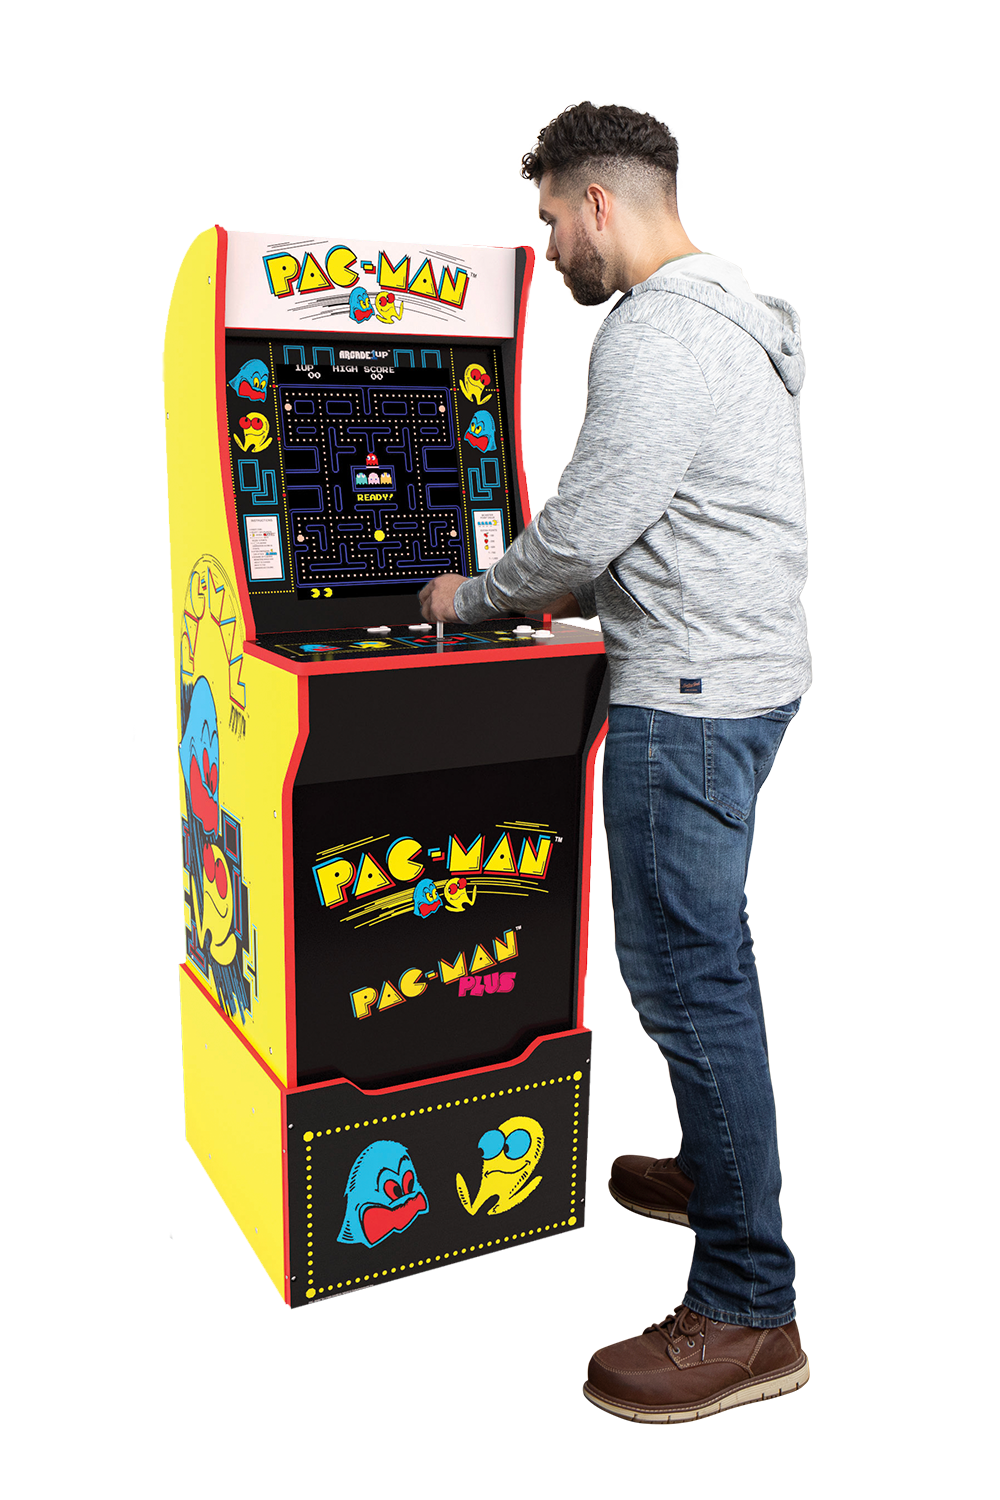 pacman-lifestyle_2048x.png?v=1582574323